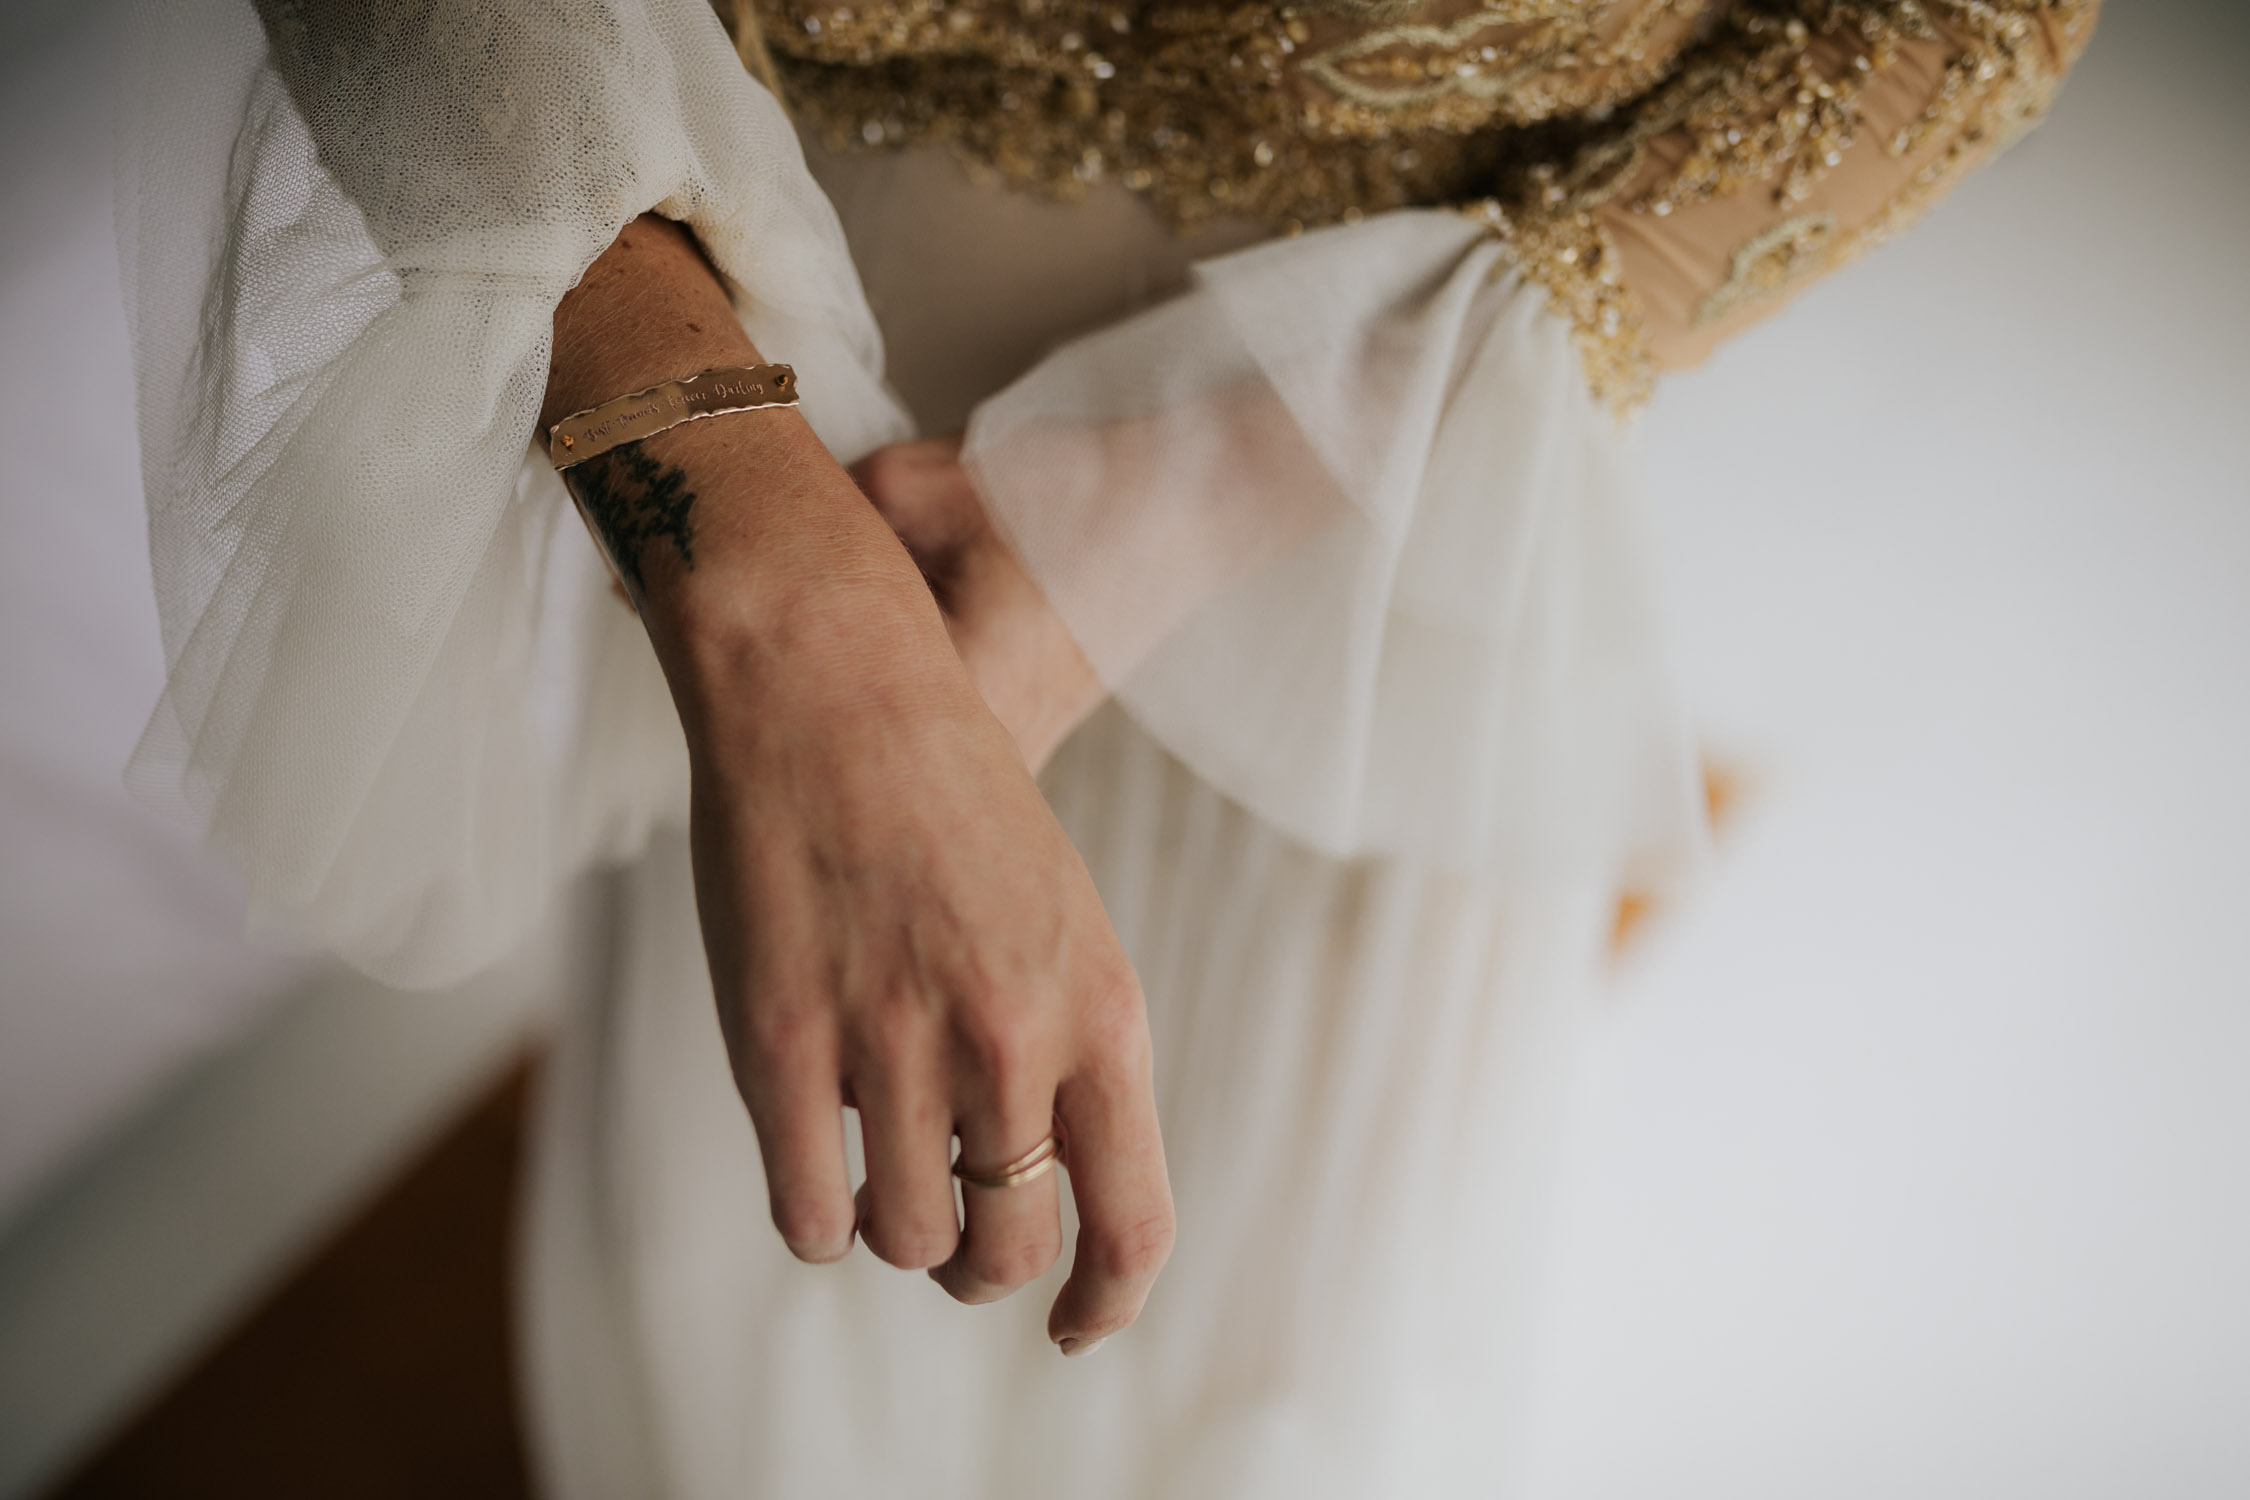 Bohemian bride with long curly blonde hair wearing gold detail long sleeve wedding dress puts on handmade bracelet - a present from the groom